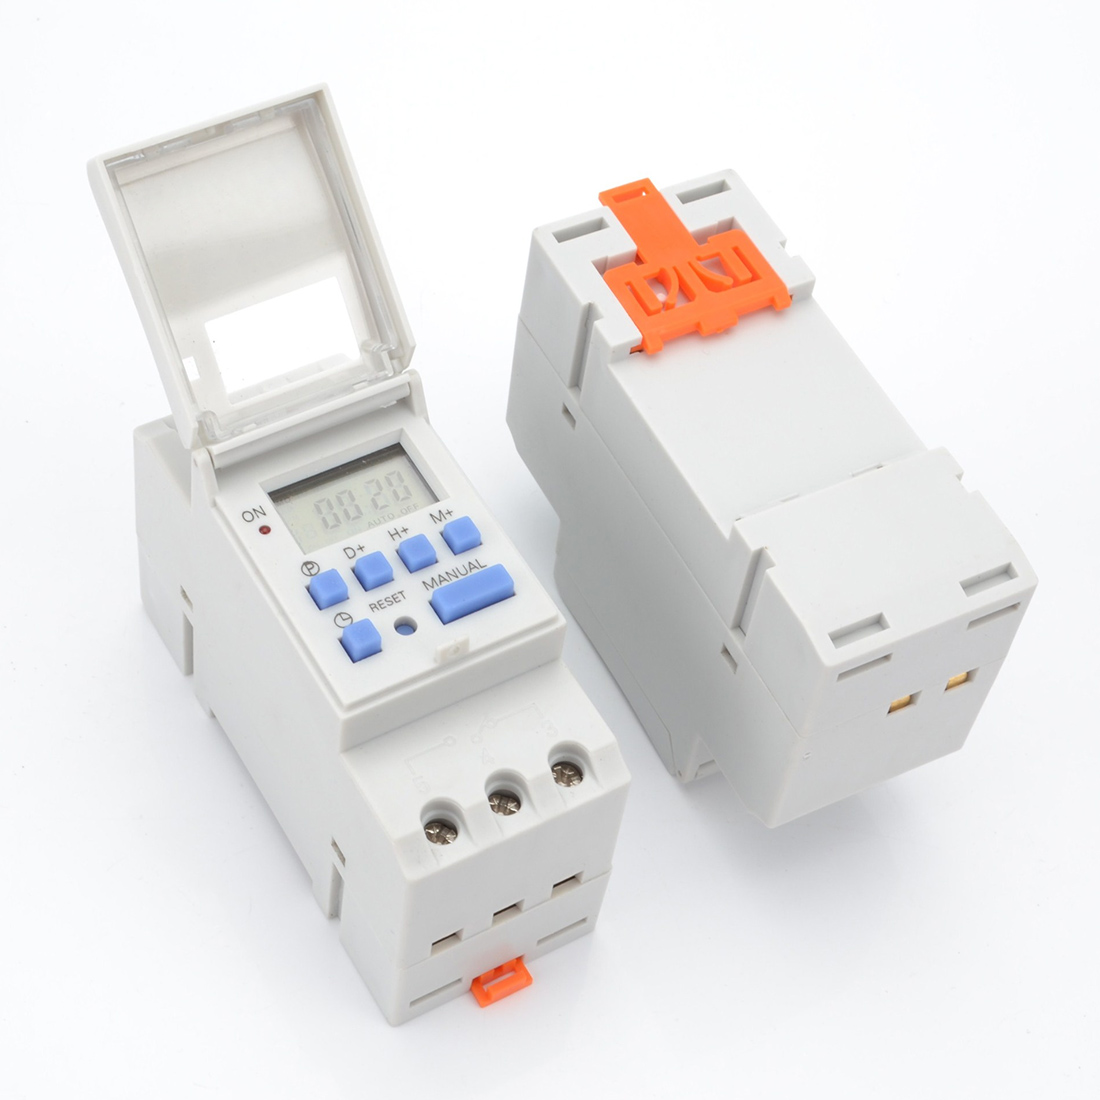 Good Electronic Weekly 7 Days Programmable Digital TIME SWITCH Relay Timer Control AC  220V / 110V DC 12V 16A  Din Rail Mount